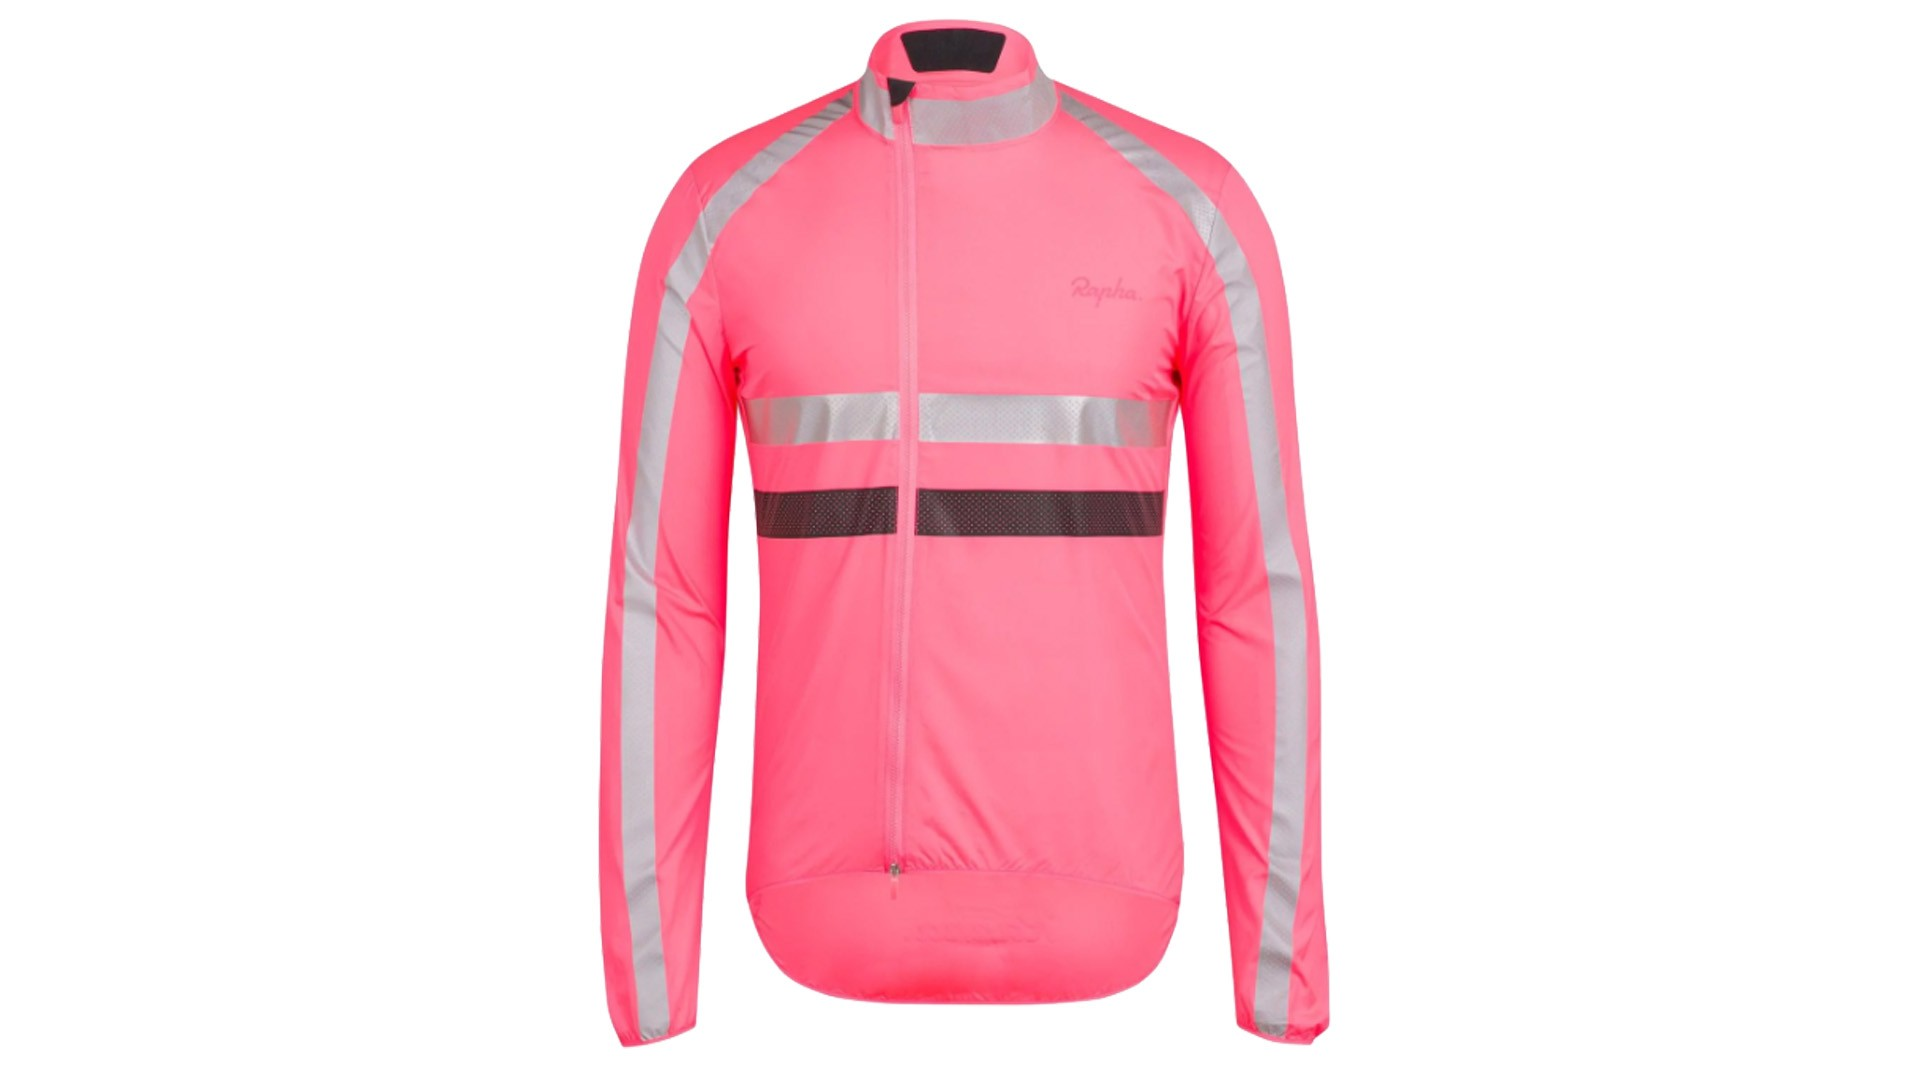 Keep the wind off and keep your visibility up while riding in low light conditions